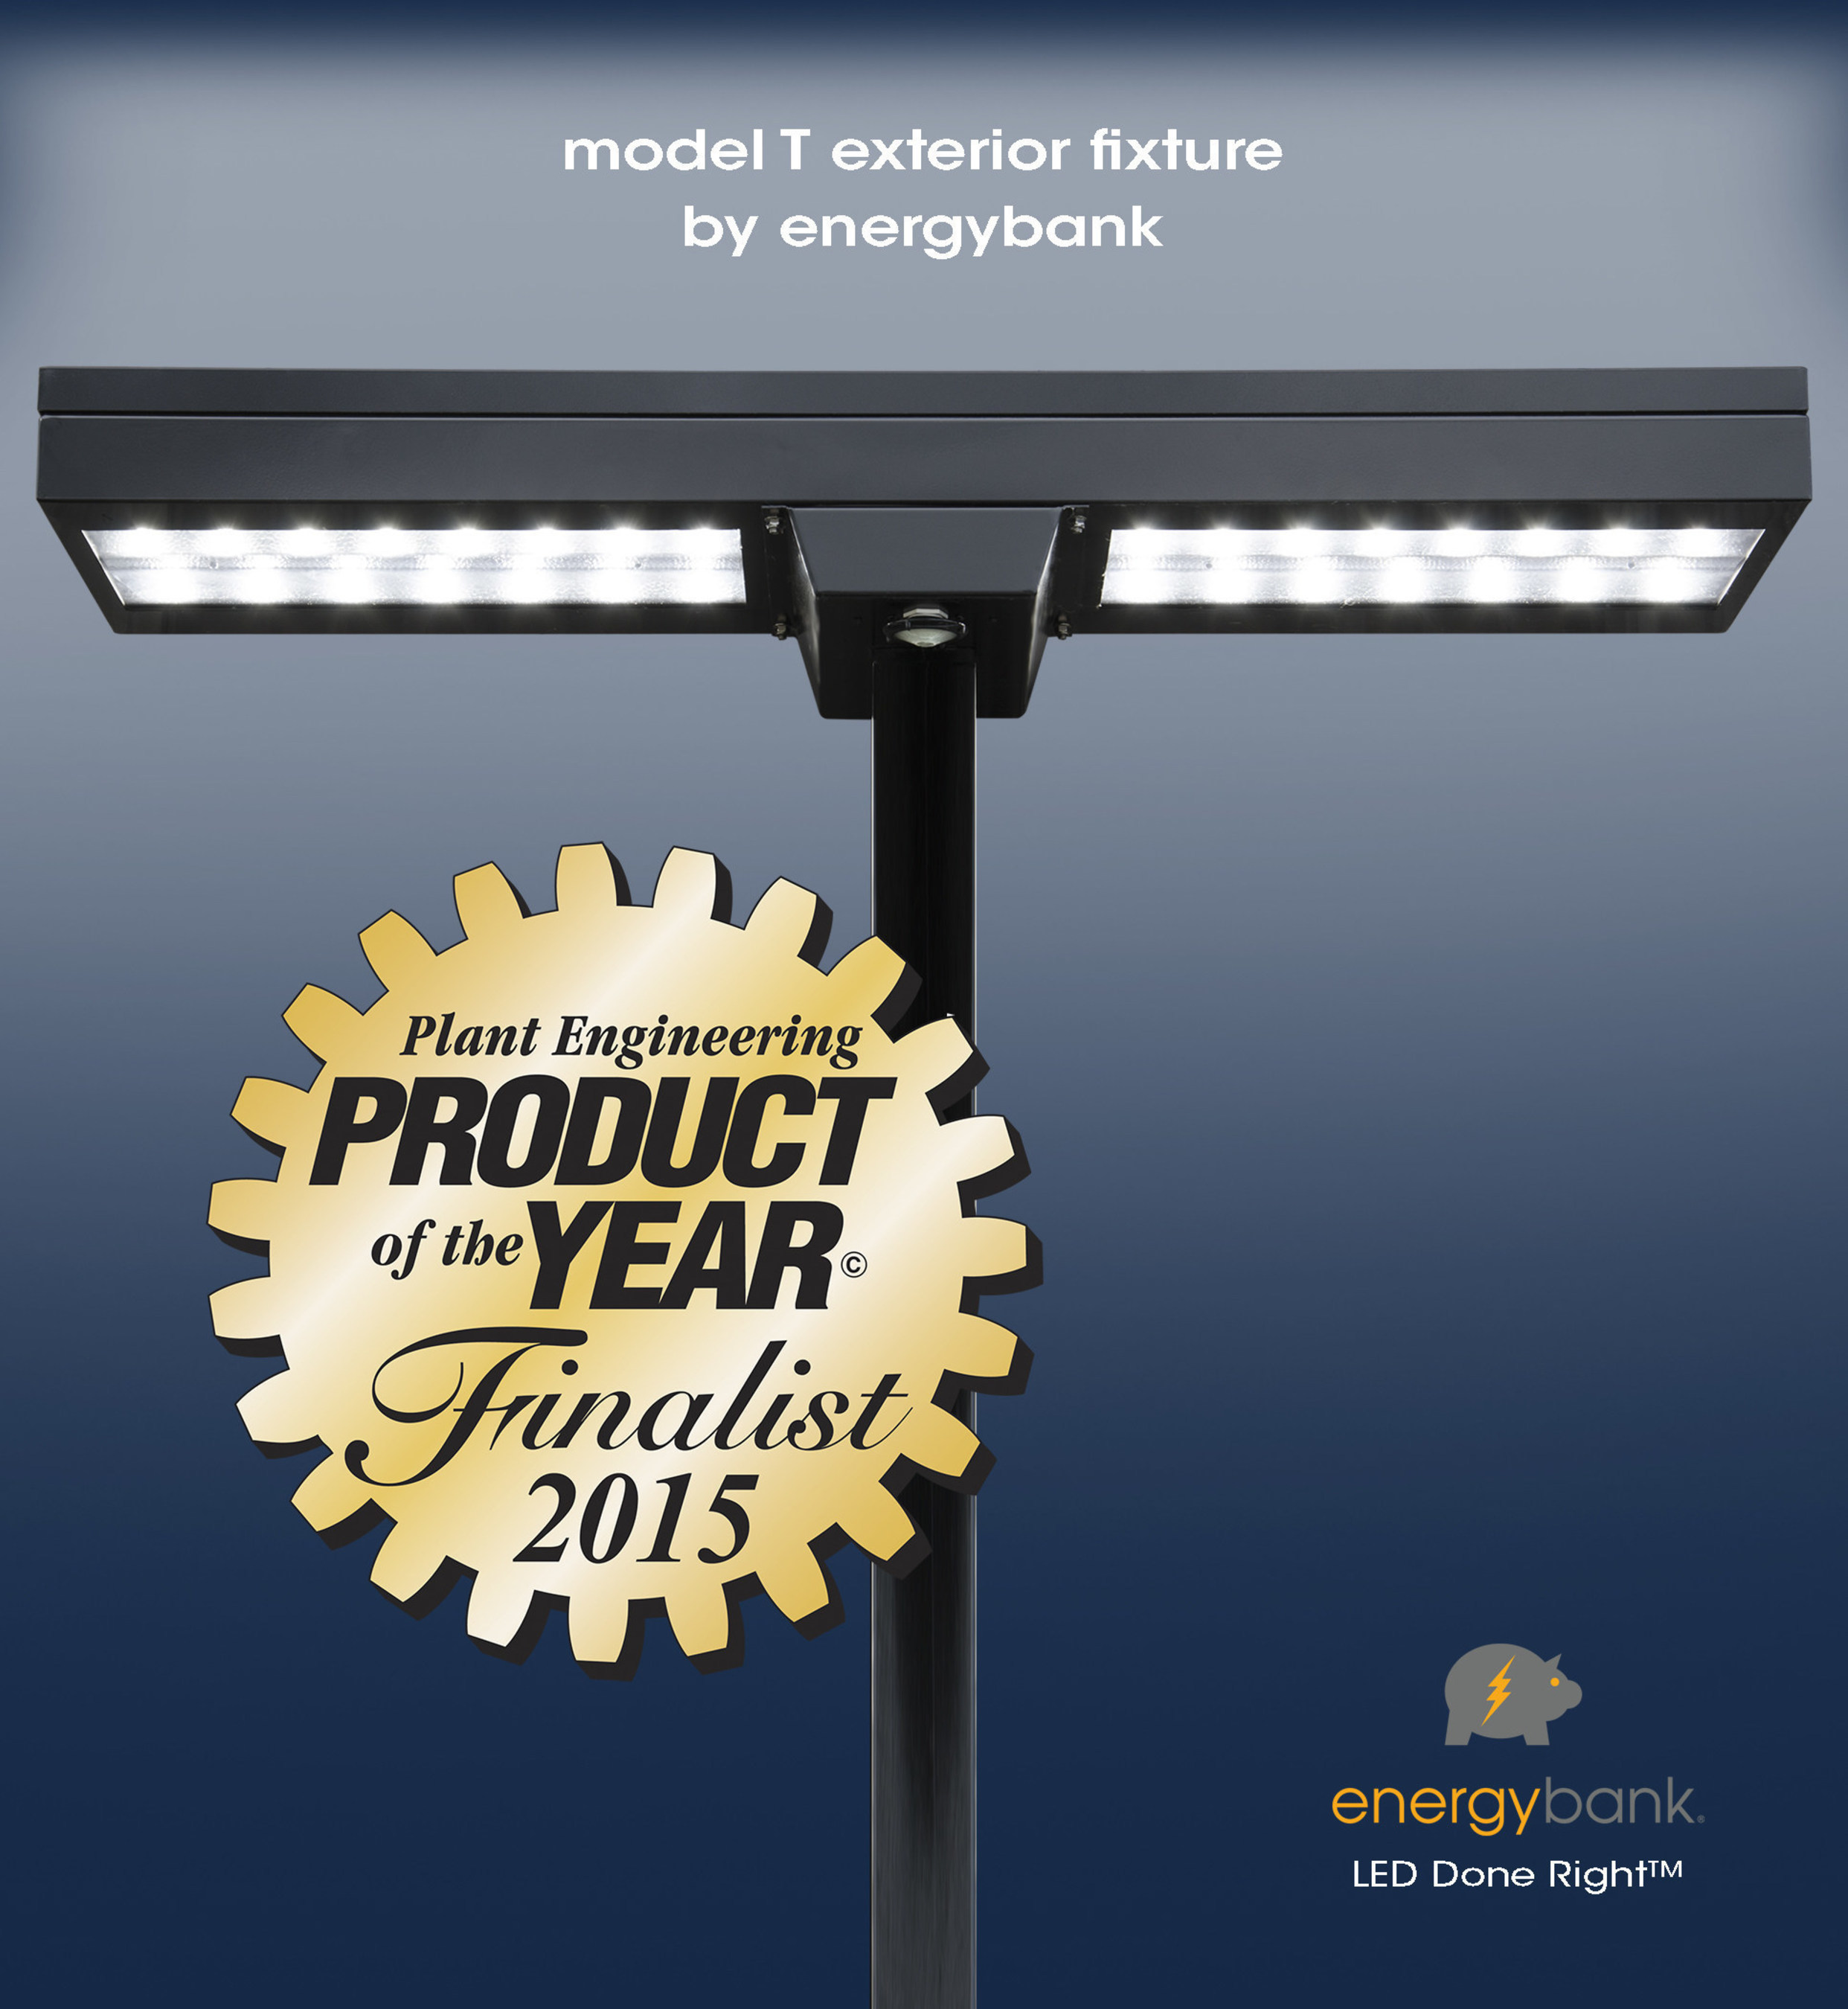 energybank is a Plant Engineering 'Product of the Year 2015' Finalist